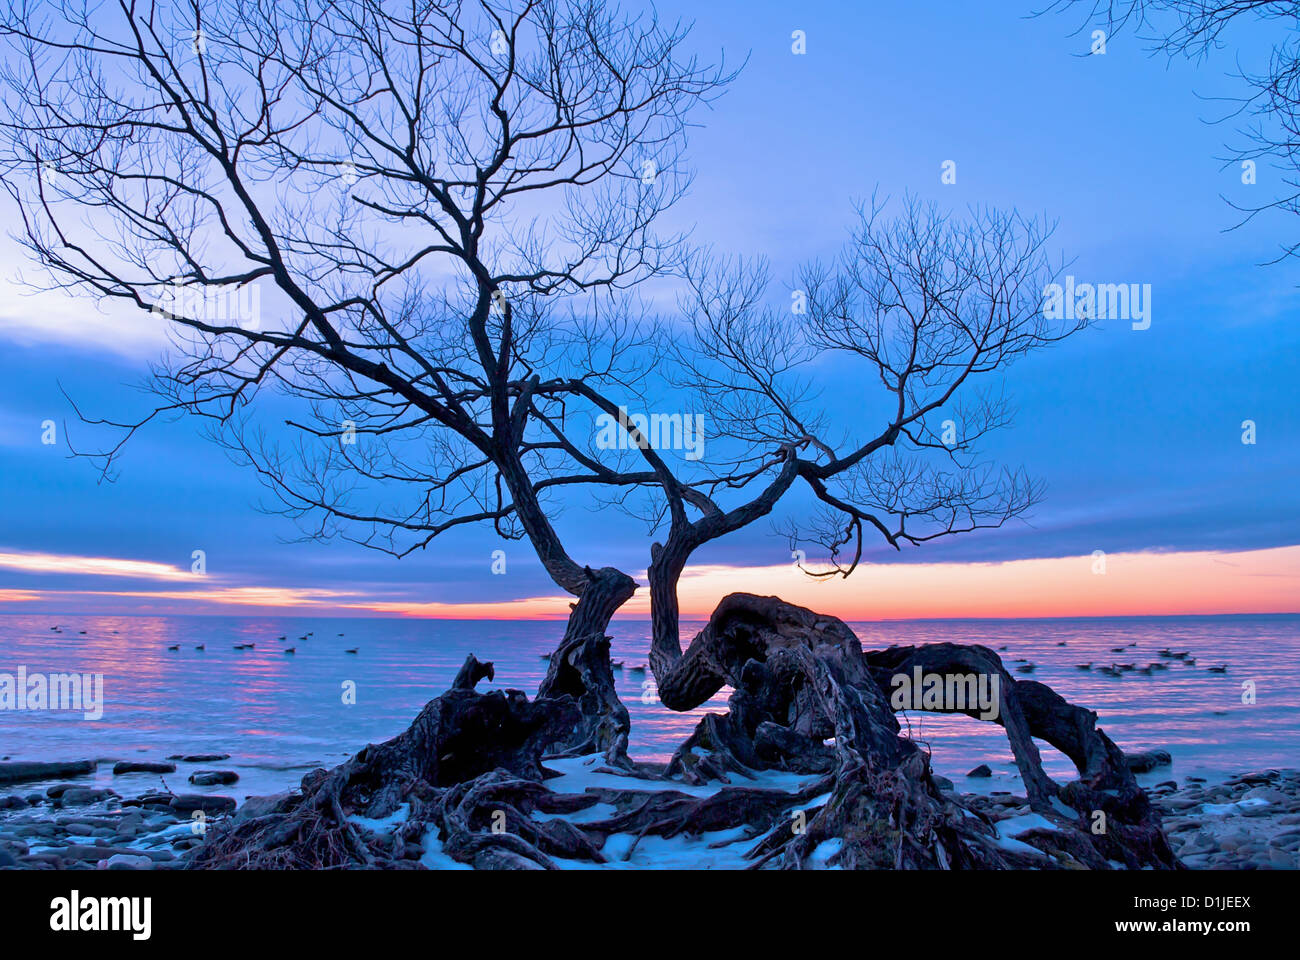 Tree Hanging over Lake in Coronation Park, Oakville, ON, Canada - Stock Image